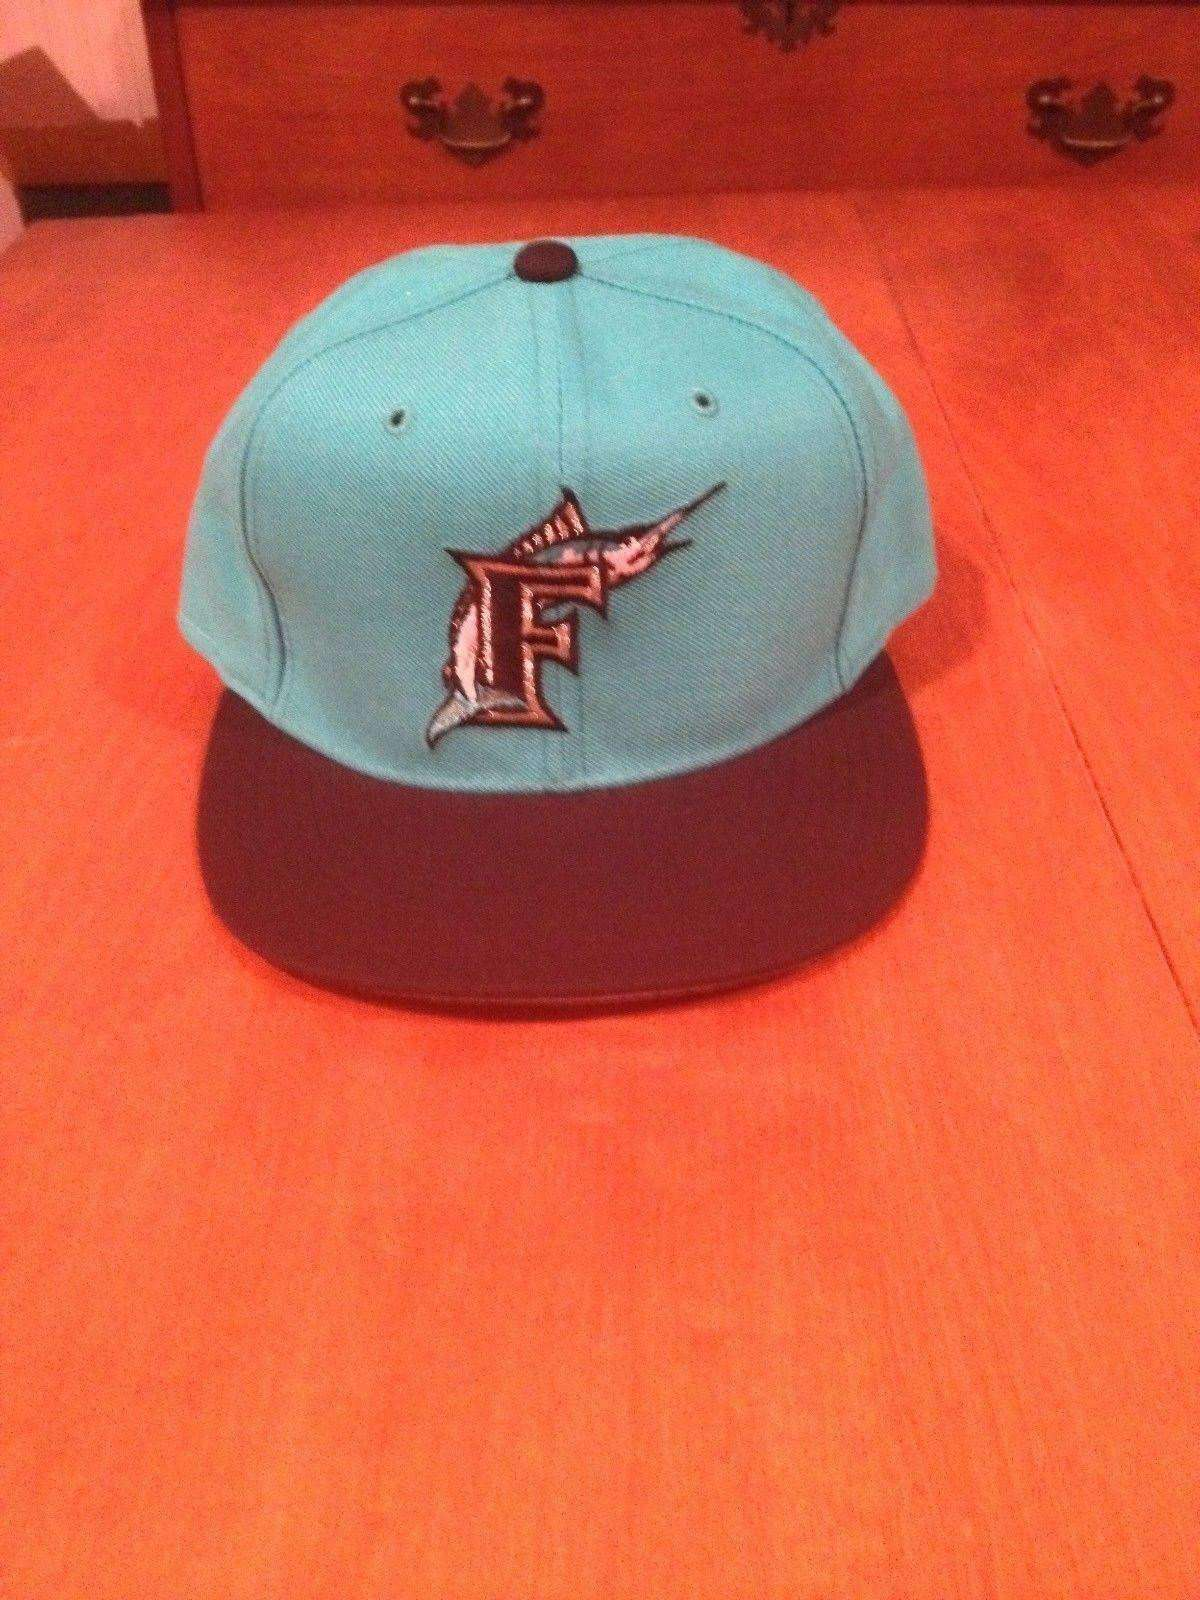 newest 077e0 869b4 Florida Marlins New Era Fitted Hat new 5950 MLB Baseball Diamond Colle –  Marvelous Marvin Murphy s